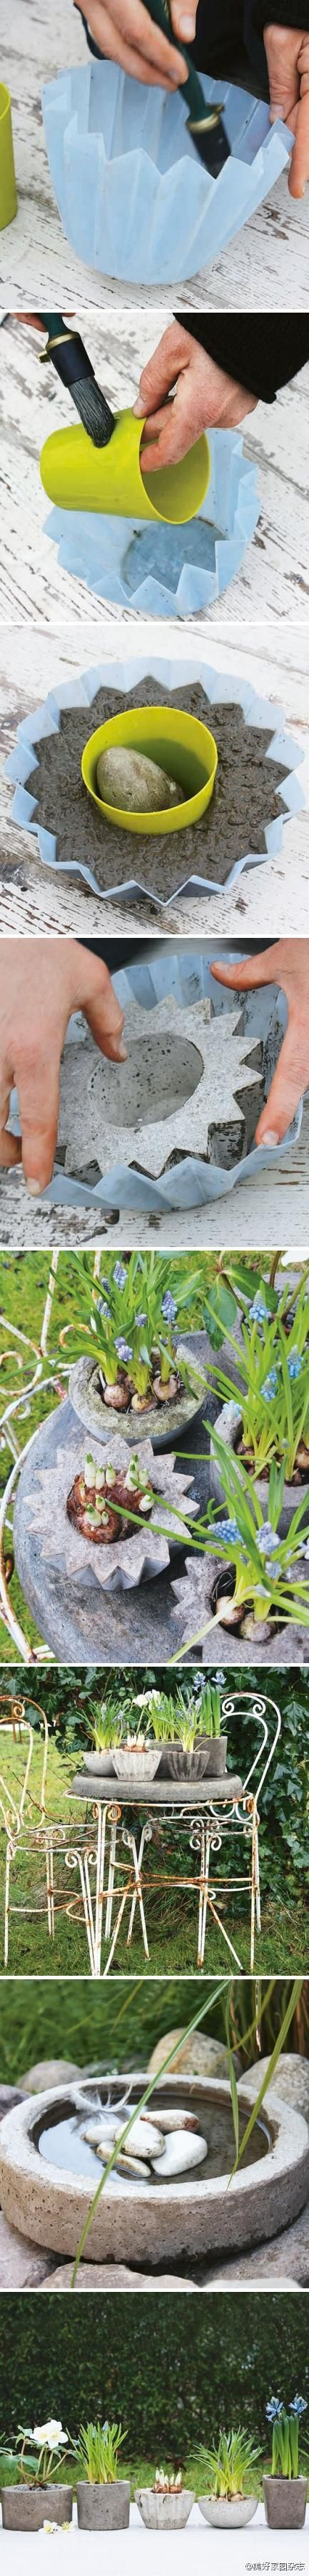 Make Your Own Concrete Planters: Concrete planters are made using a small…